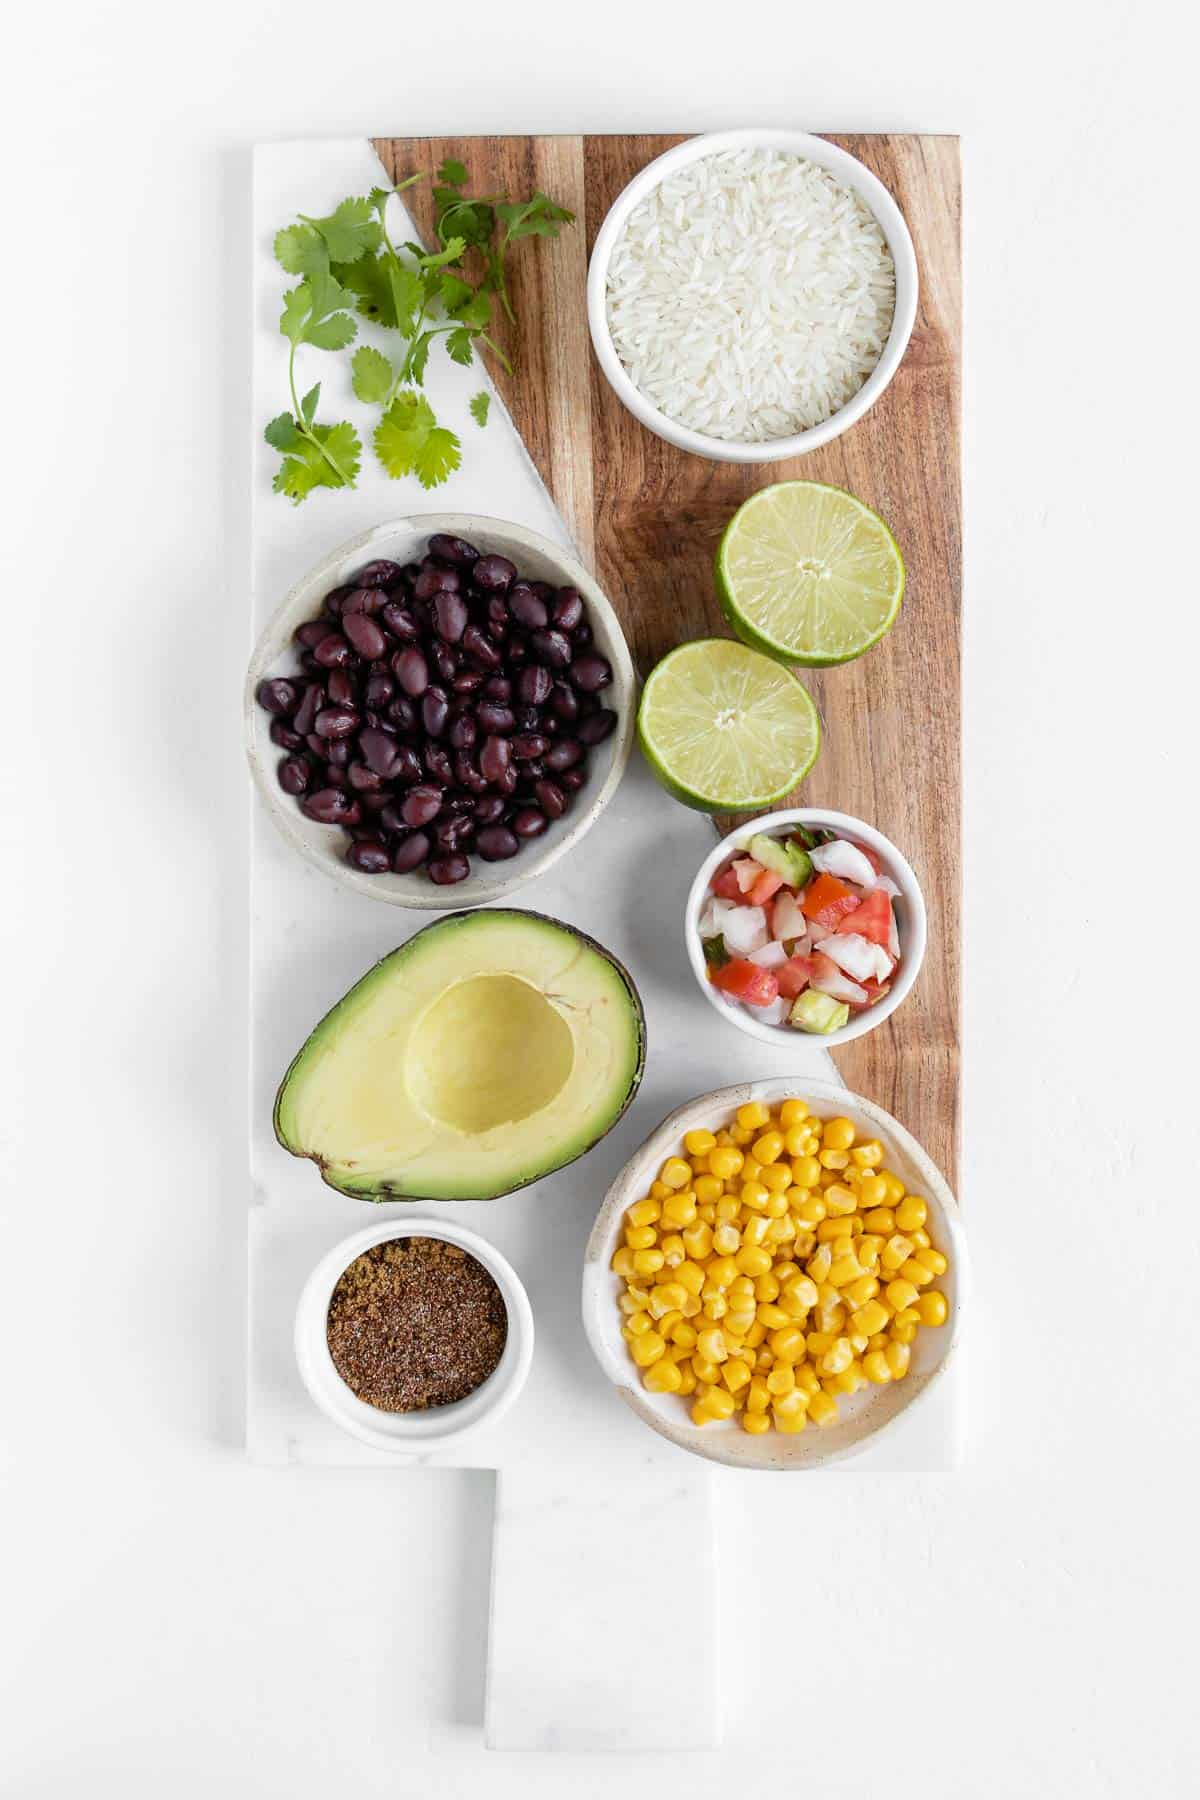 black beans, corn, diced onion, pico de gallo, avocado, spices, cilantro, and lime on a marble board